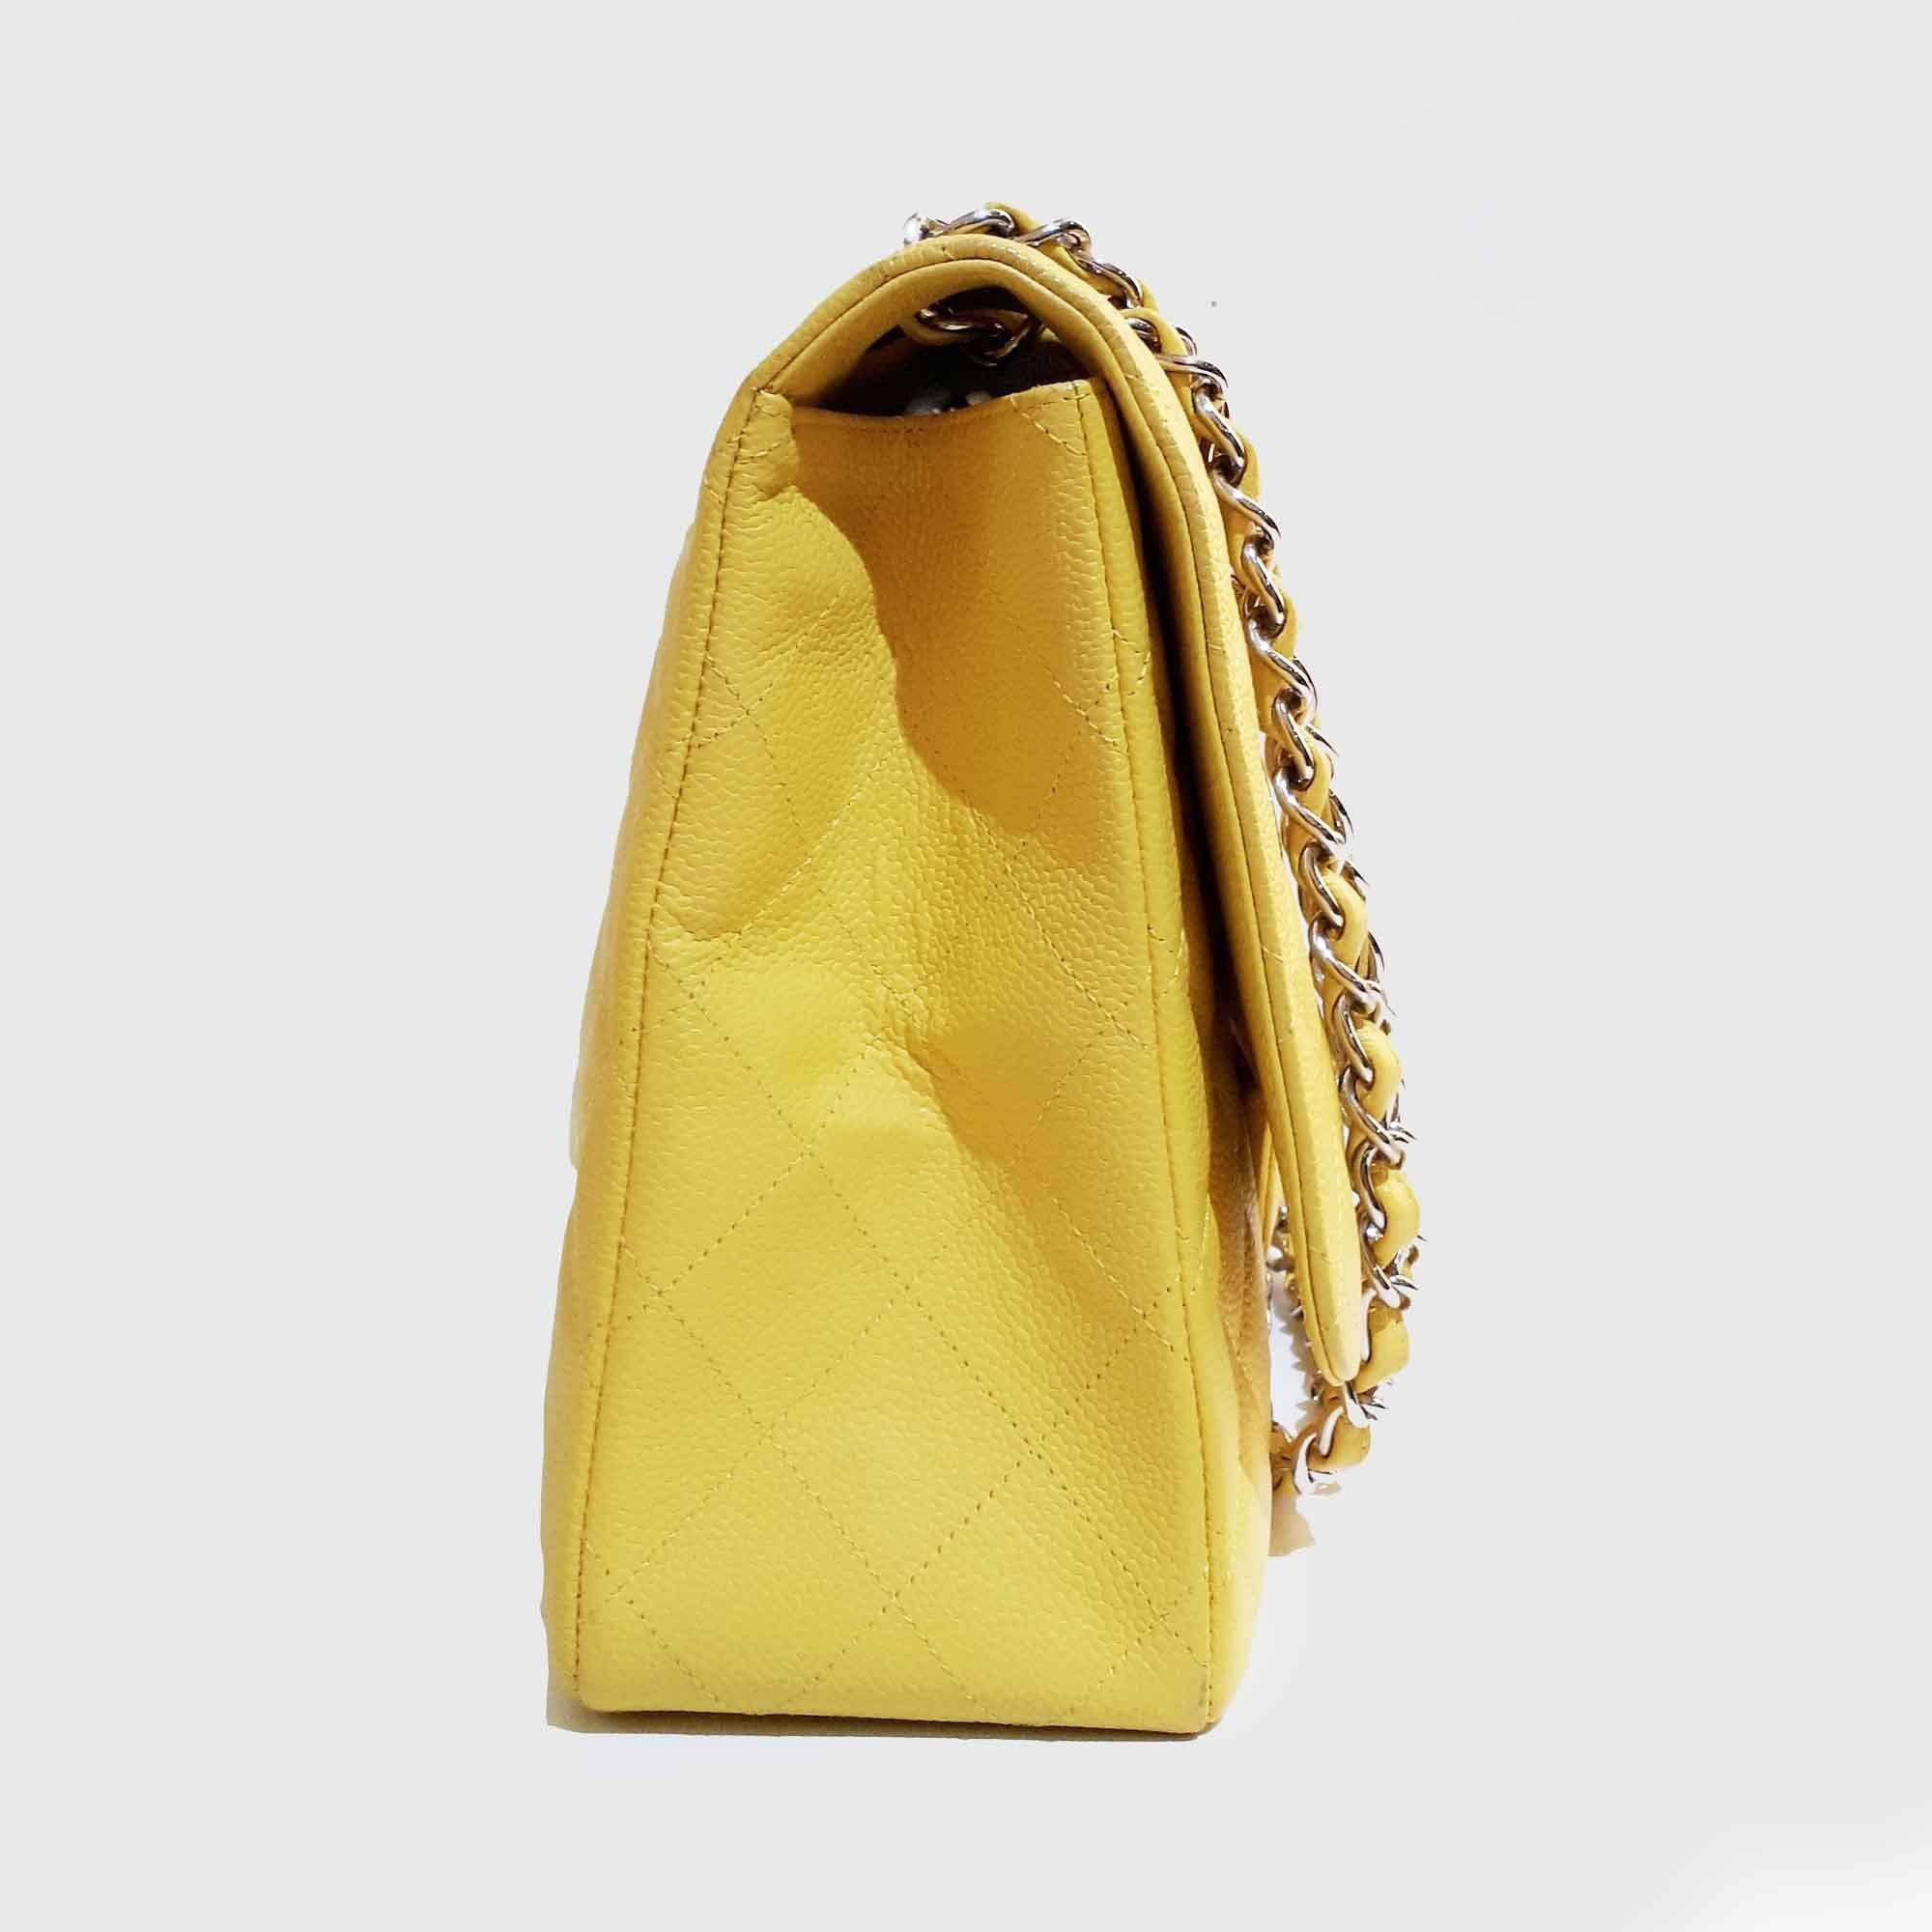 Chanel Yellow Caviar Classic Maxi Bag